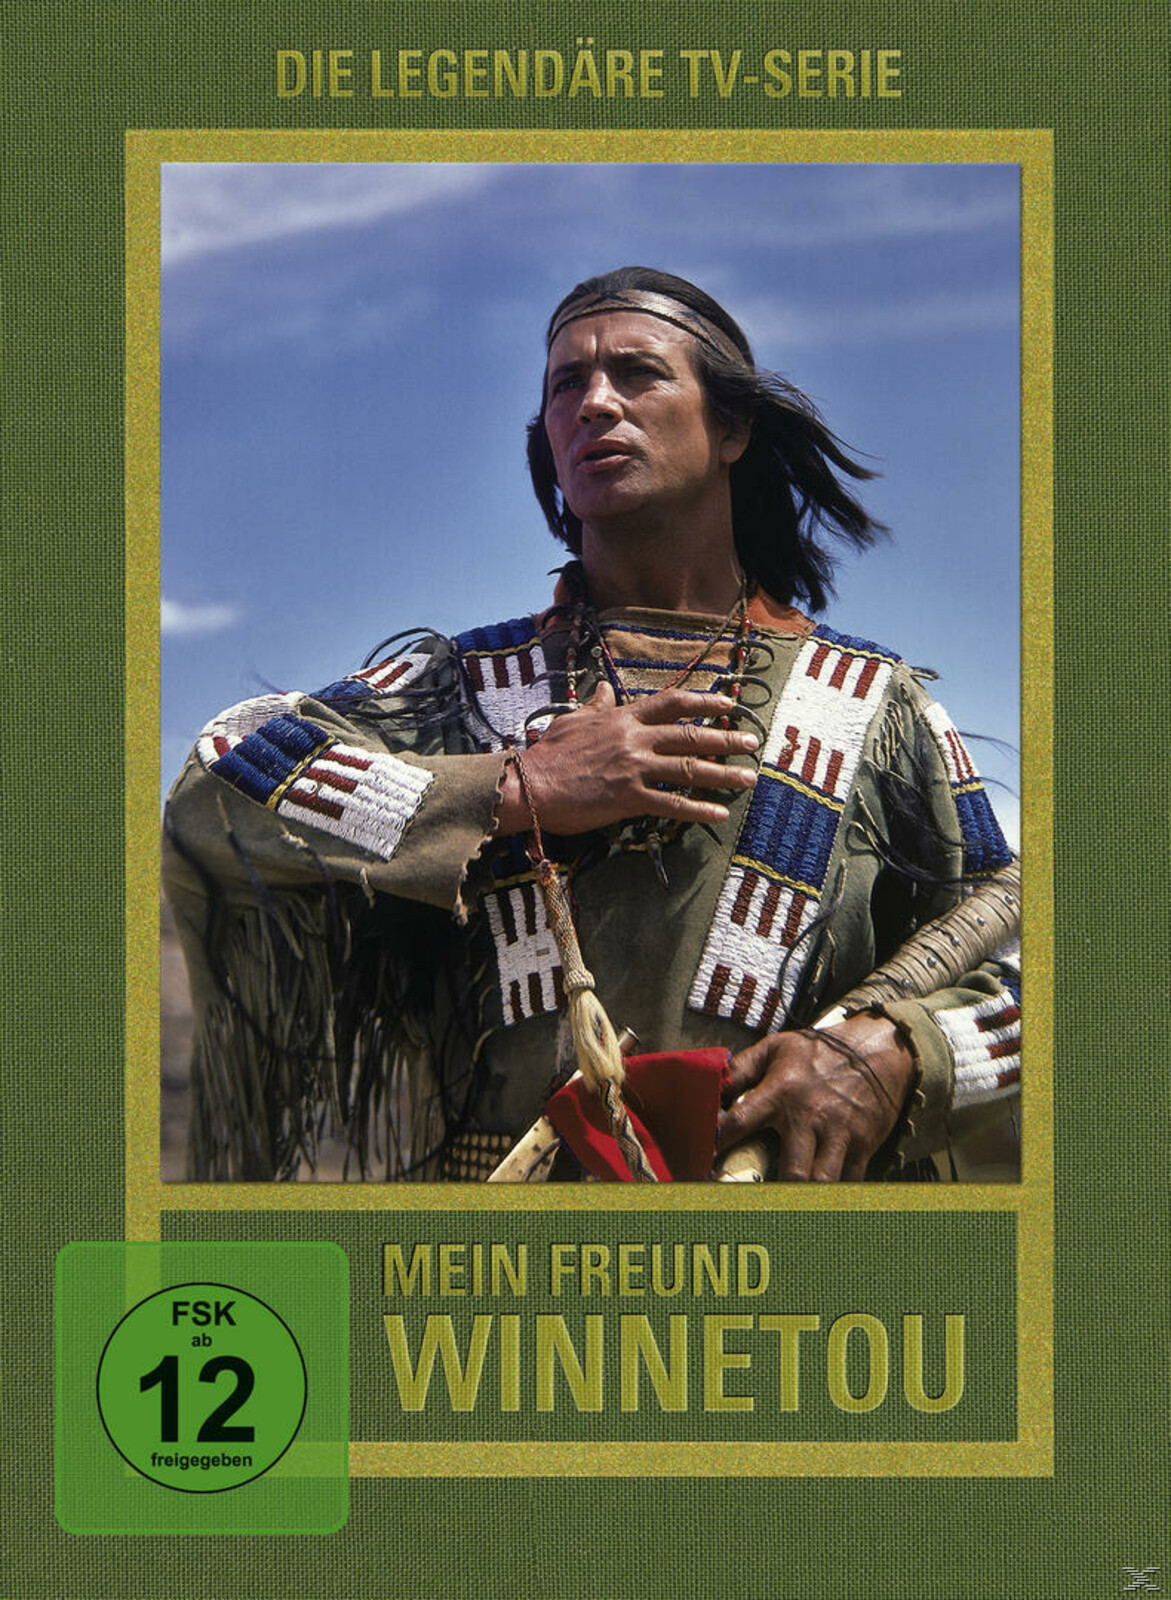 mein freund winnetou dvd 4020628942861 ebay. Black Bedroom Furniture Sets. Home Design Ideas